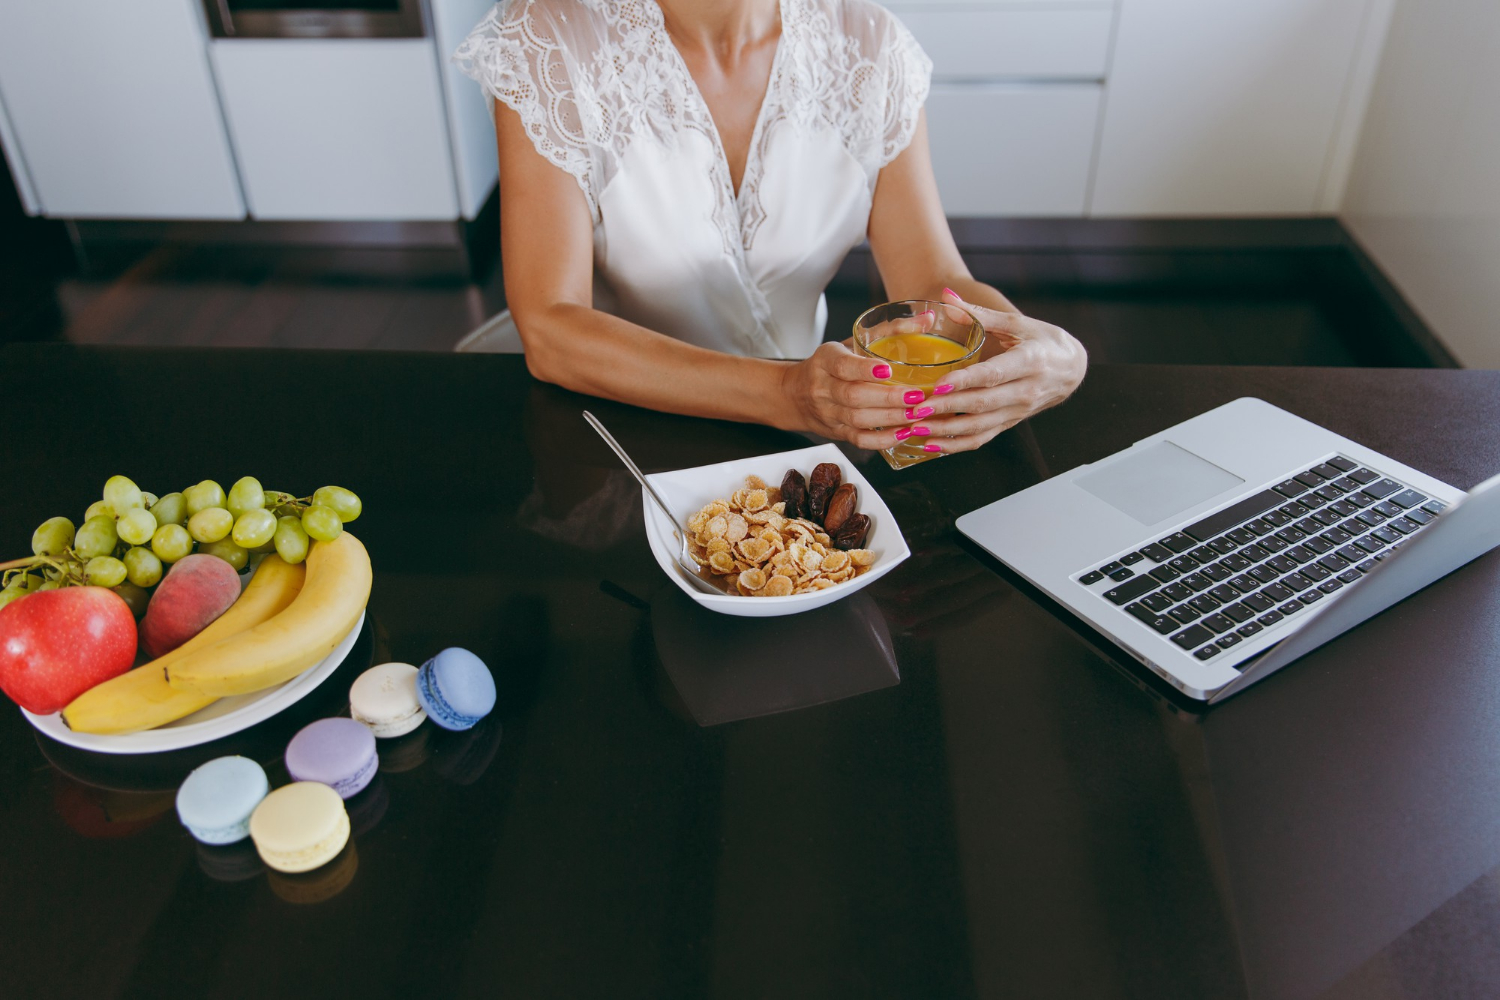 What You Eat Can Affect Your Workplace Performance